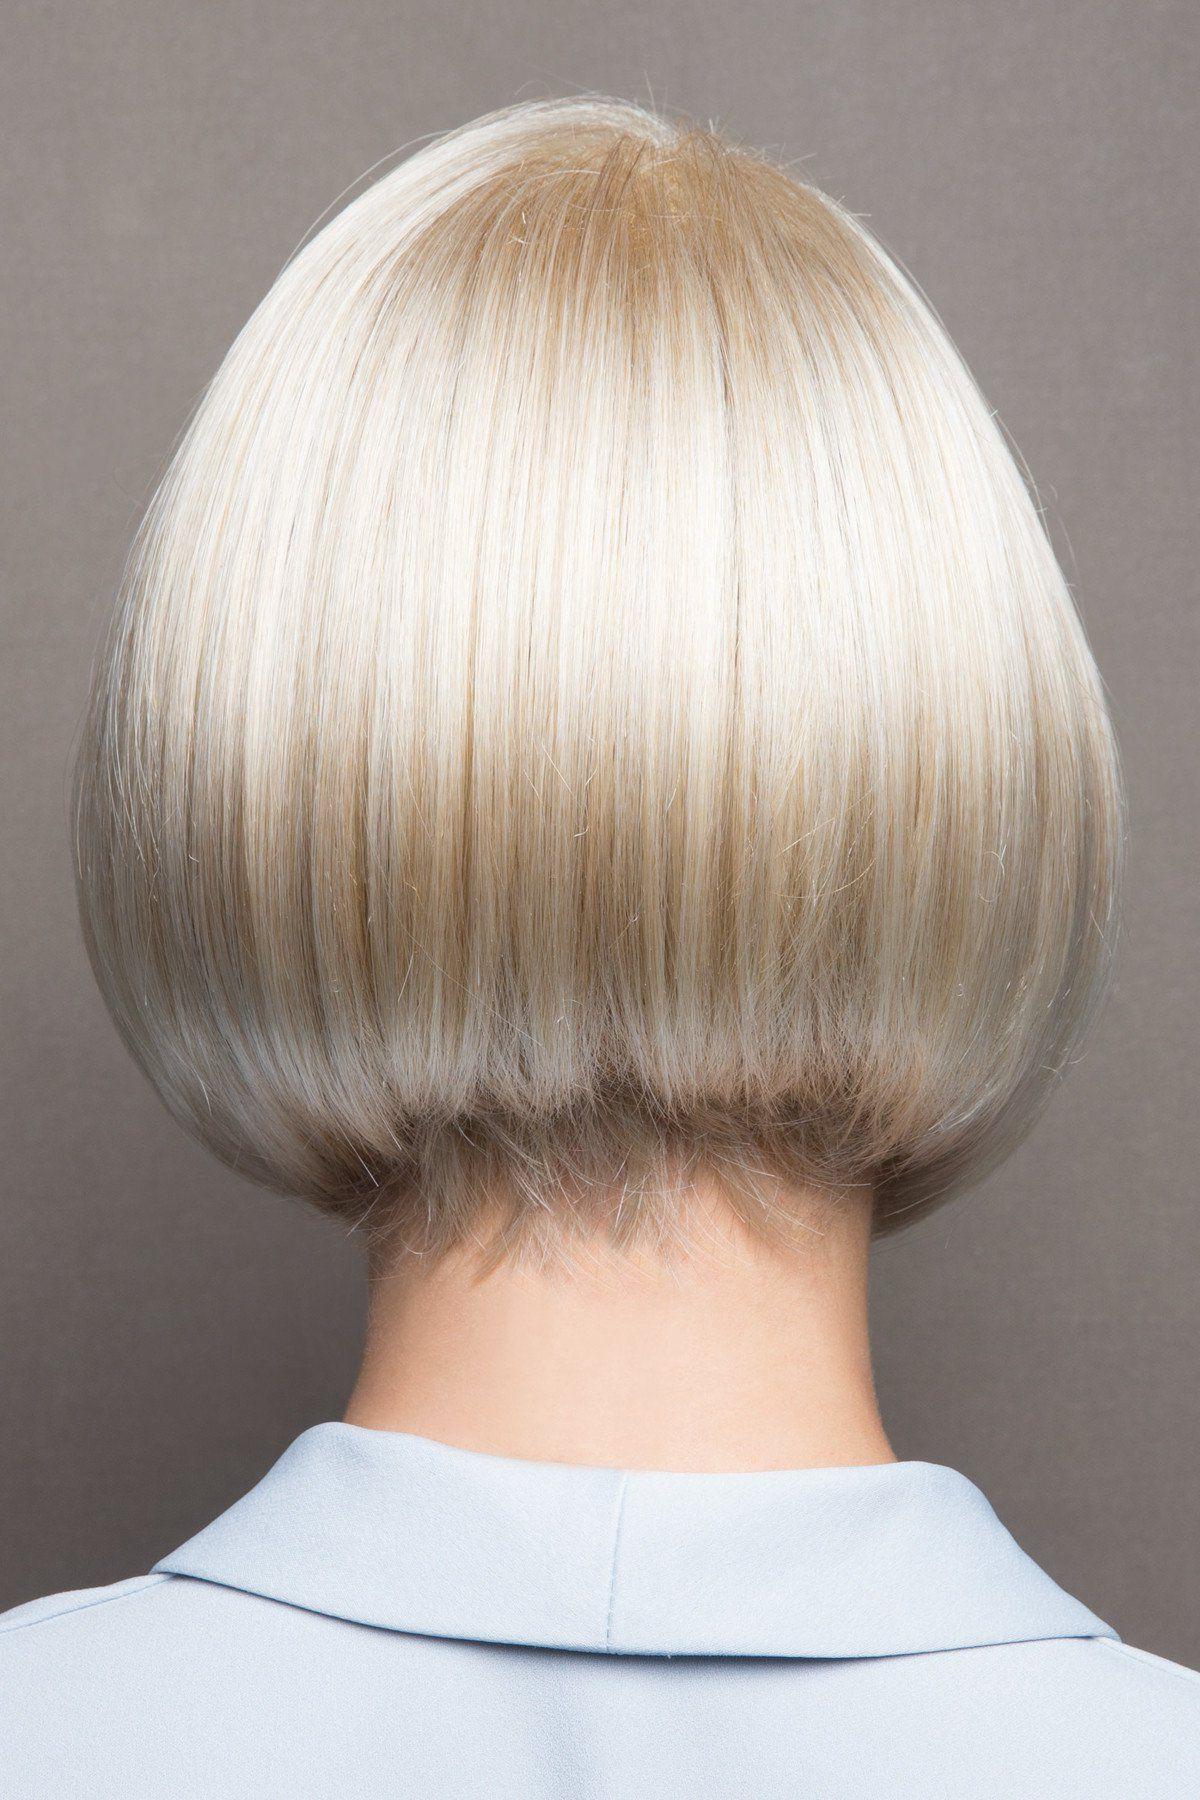 Bob Hairstyles, Asymmetrical Bob With Regard To Trendy Textured Classic Bob Hairstyles (View 9 of 20)